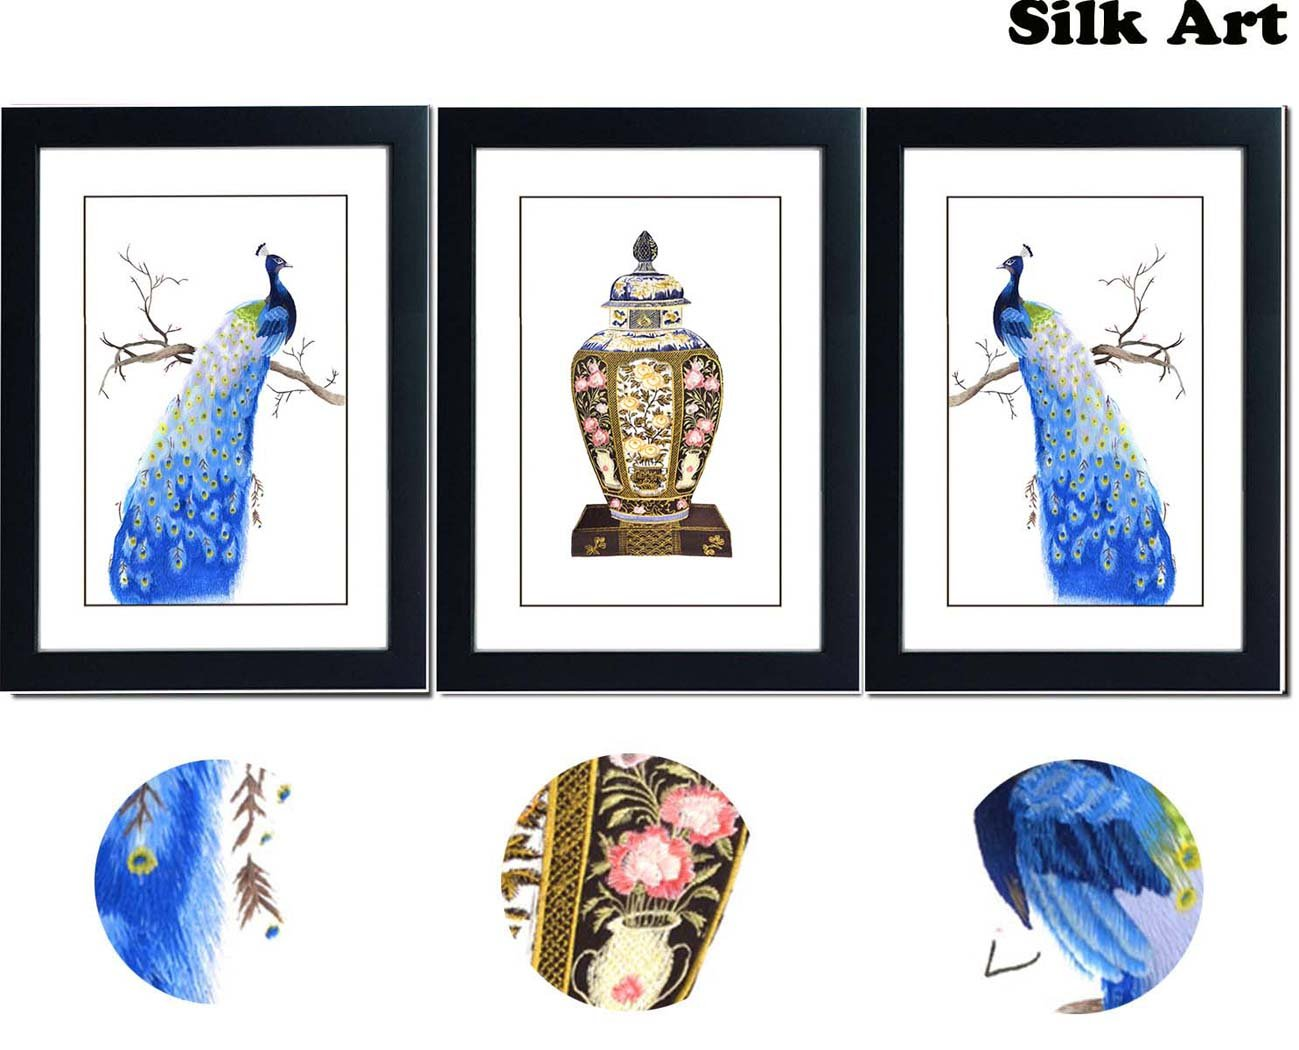 SmartWallArt - 3 Panels Peacocks Needlepoint Embroidery Paintings Collection Framed with Mat, Suzhou Silk Embroidery Artwork for Home Decor or as Perfect Wedding Gift (06:Collection) by SmartWallArt